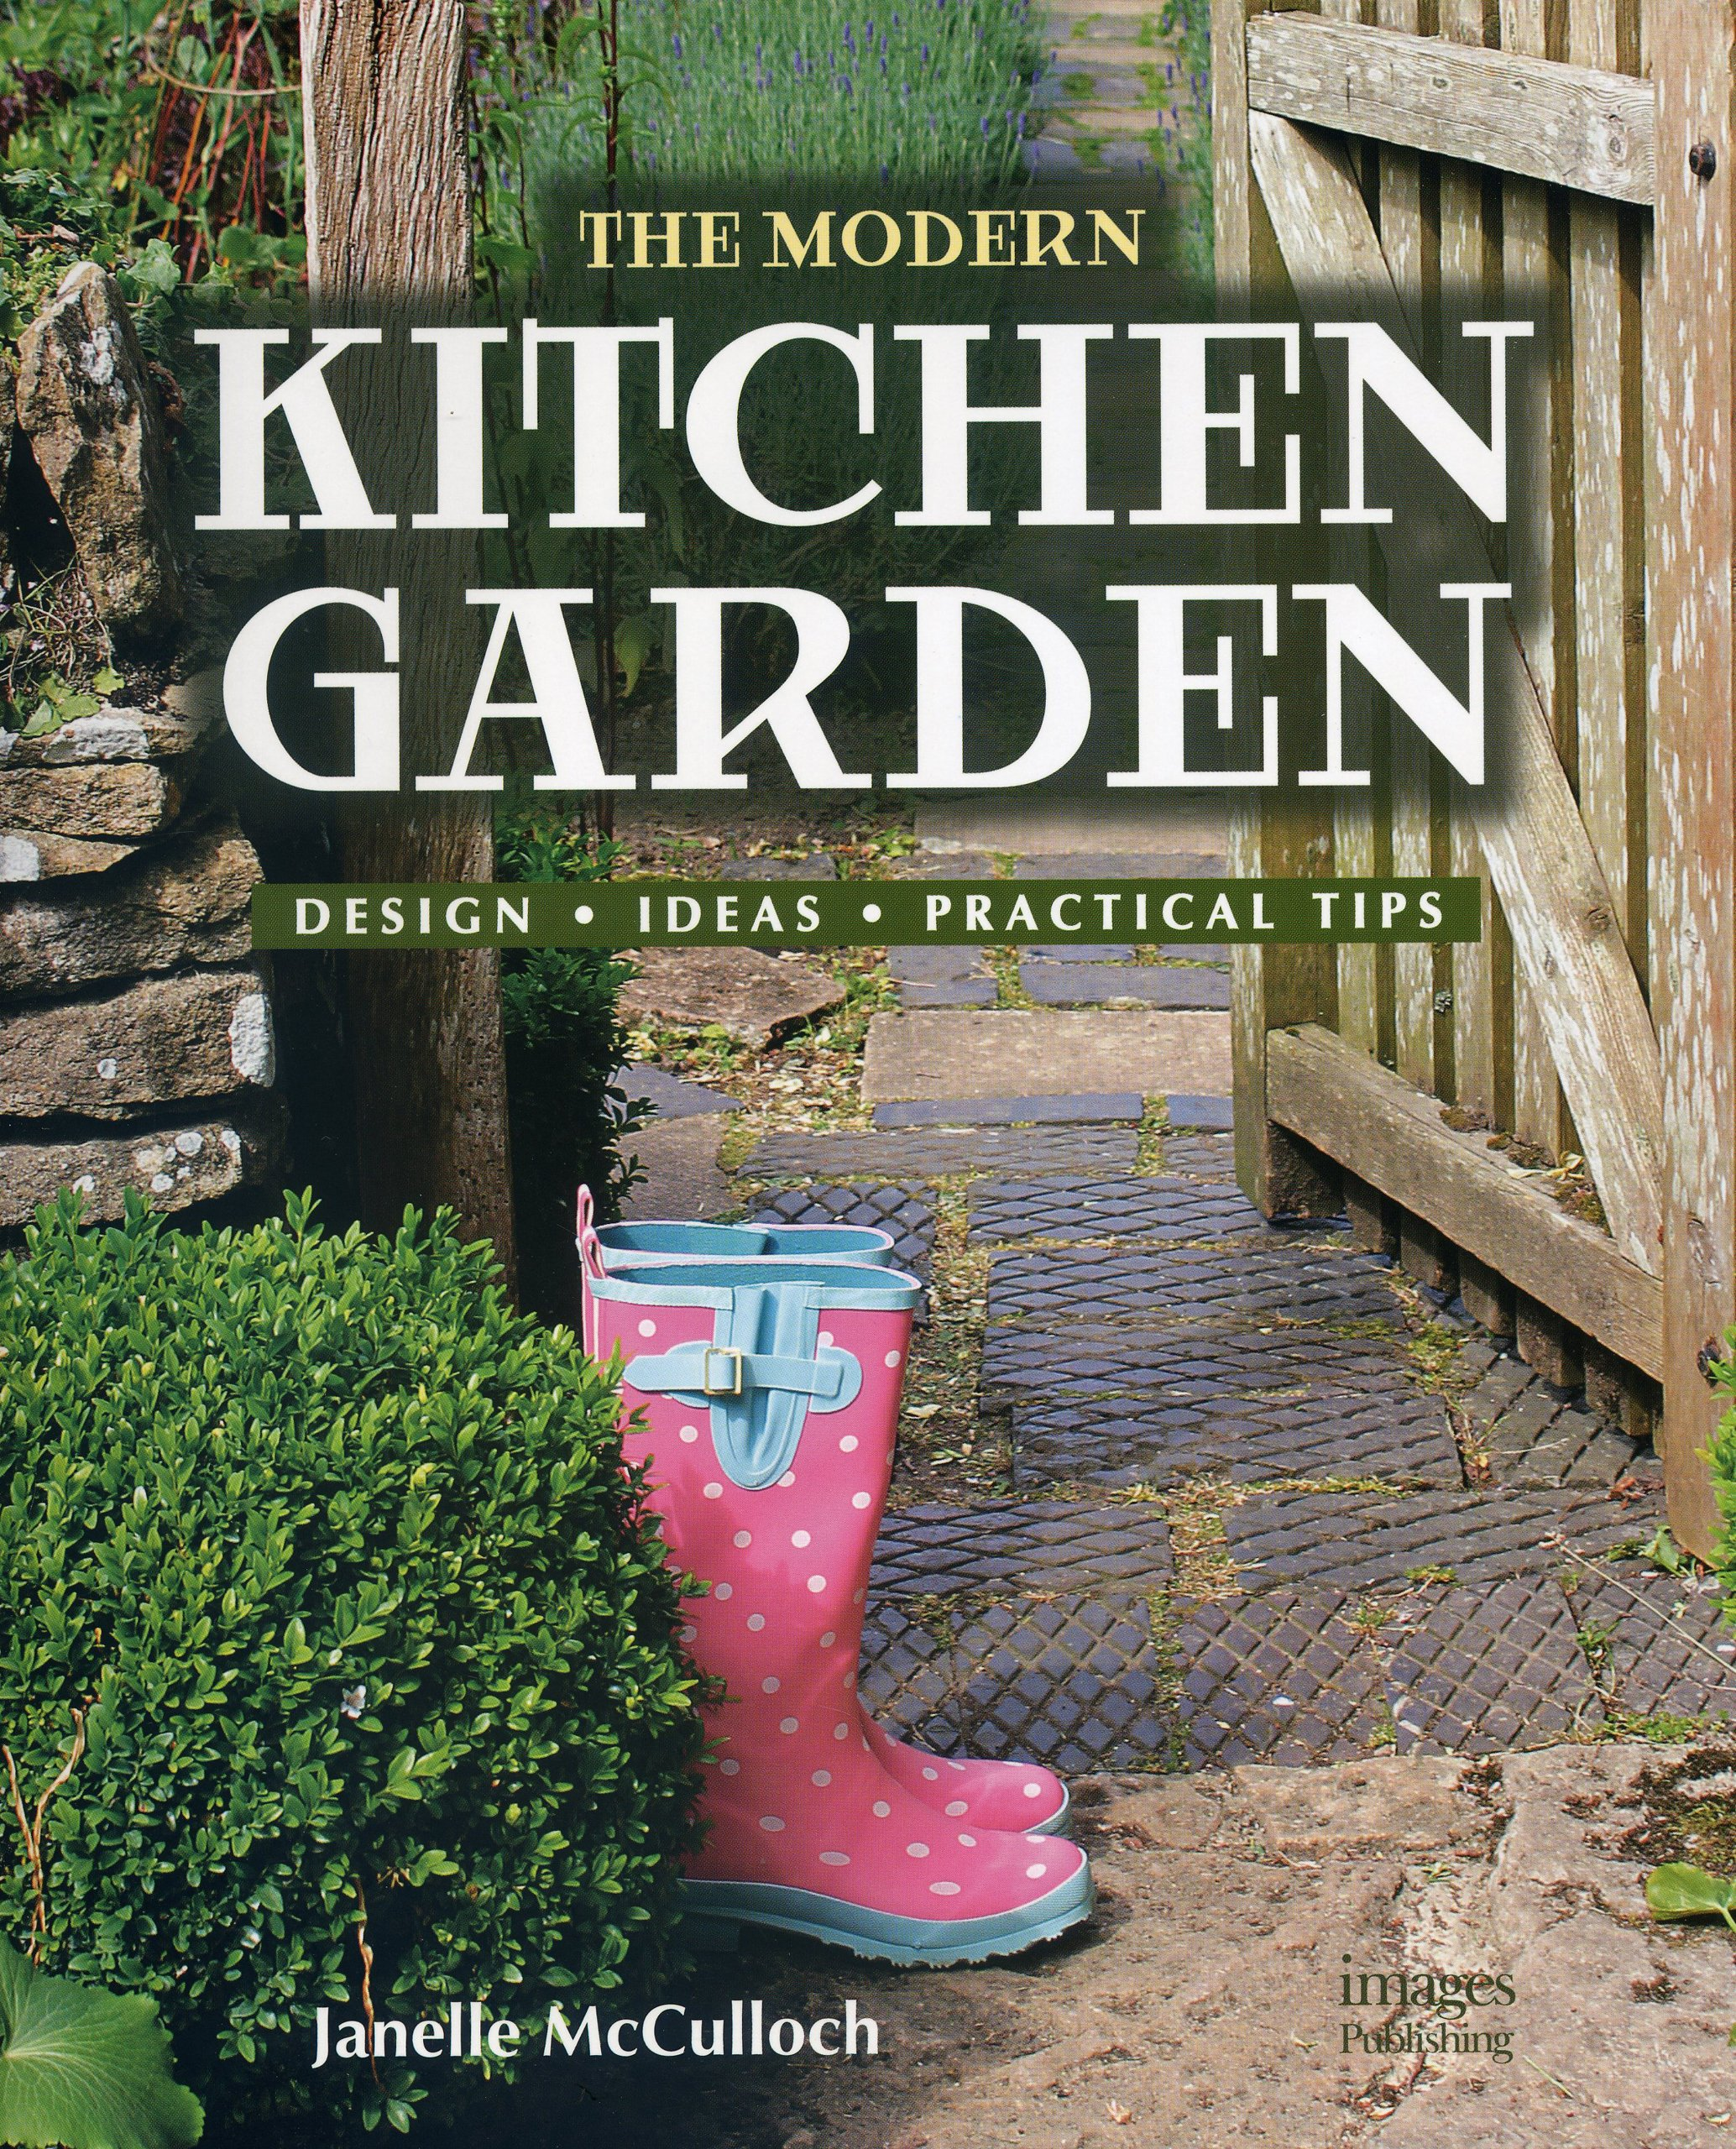 kitchen garden design. The Modern Kitchen Garden  Design Ideas Practical Tips Janelle McCulloch 9781864704211 Amazon com Books